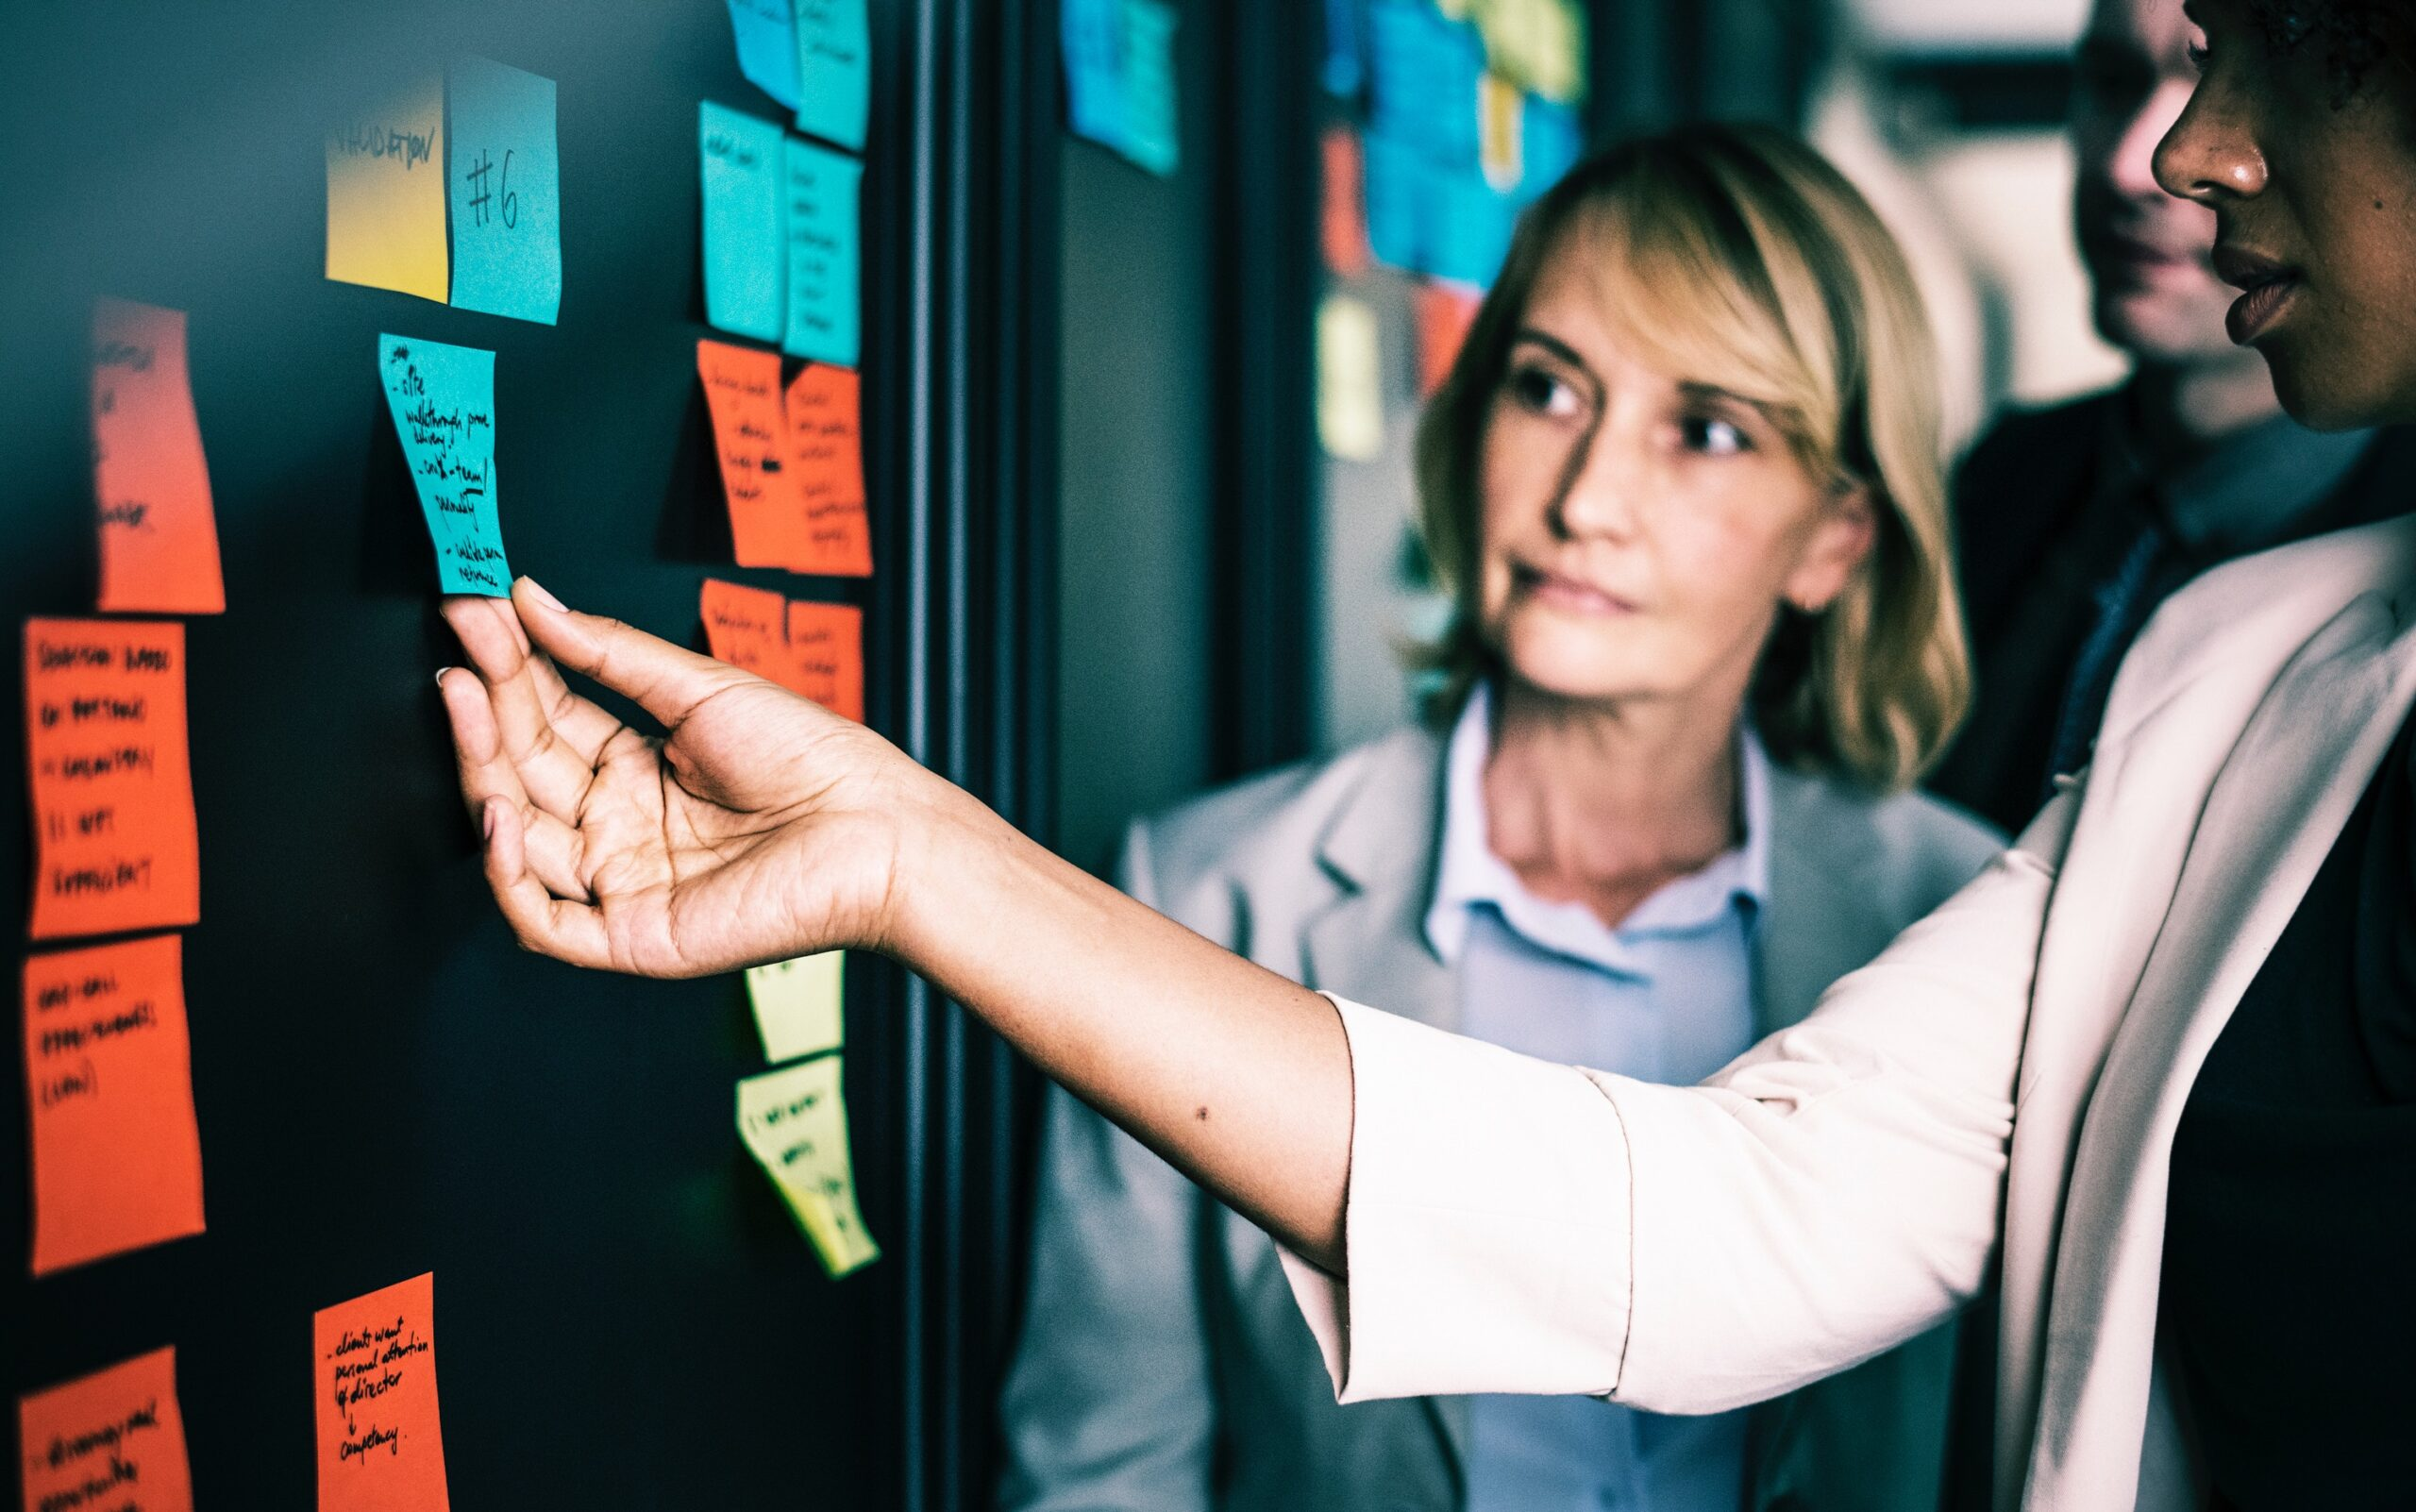 Two women delegating tasks on post it notes on an ideas board in an office space.